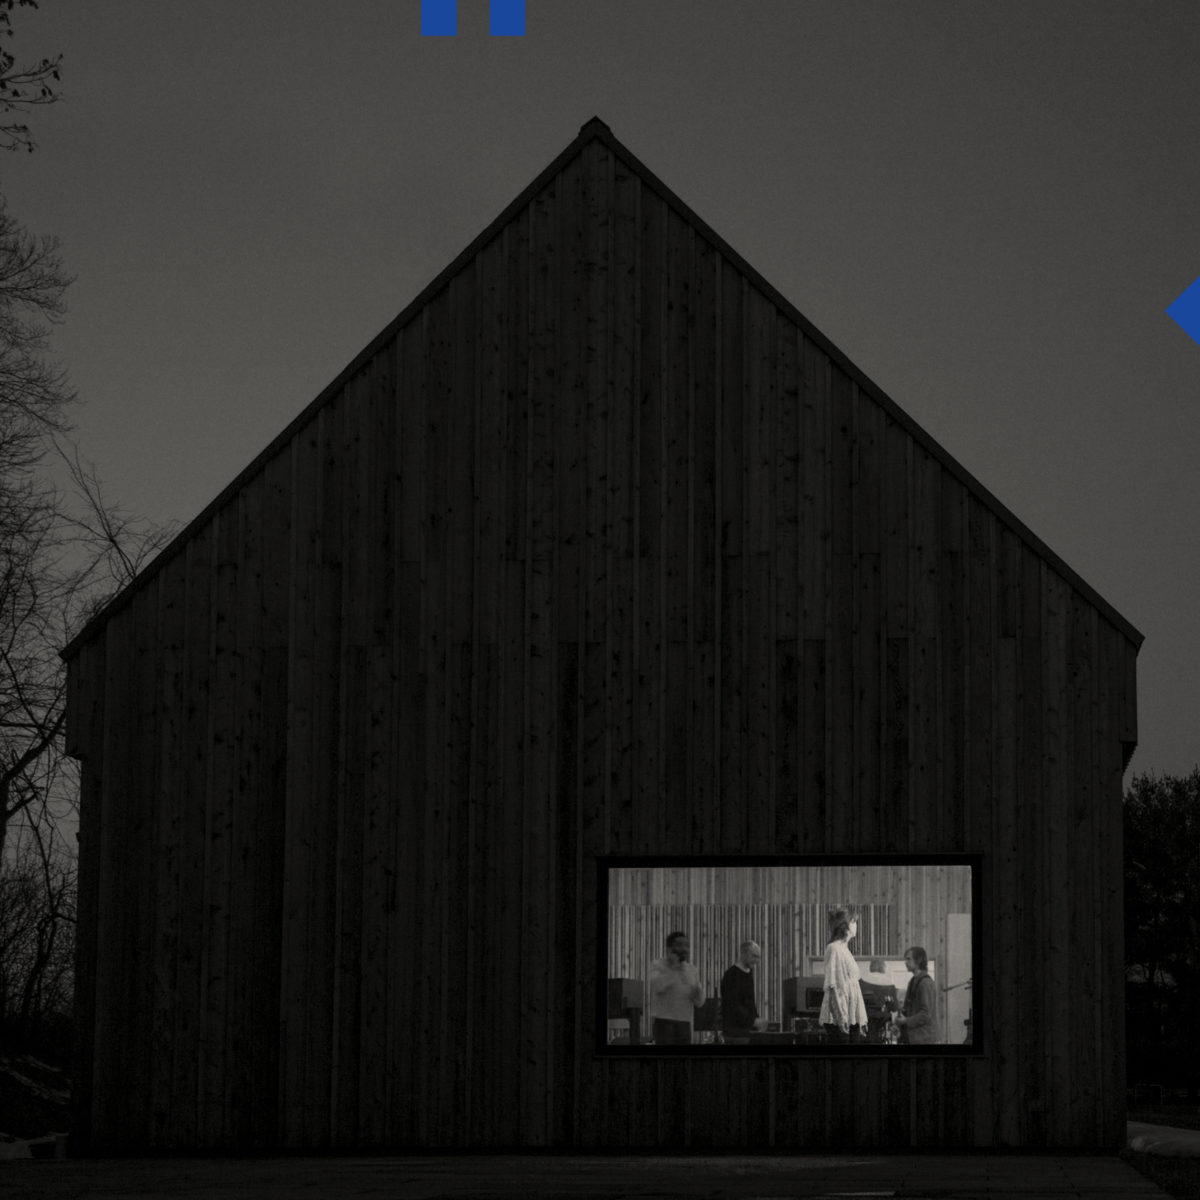 critique review chronique the national sleep well beast 2017 4ad beggars banquet beggars music group system only dreams in total darkness berninger dessner devendorf wagram indie rock